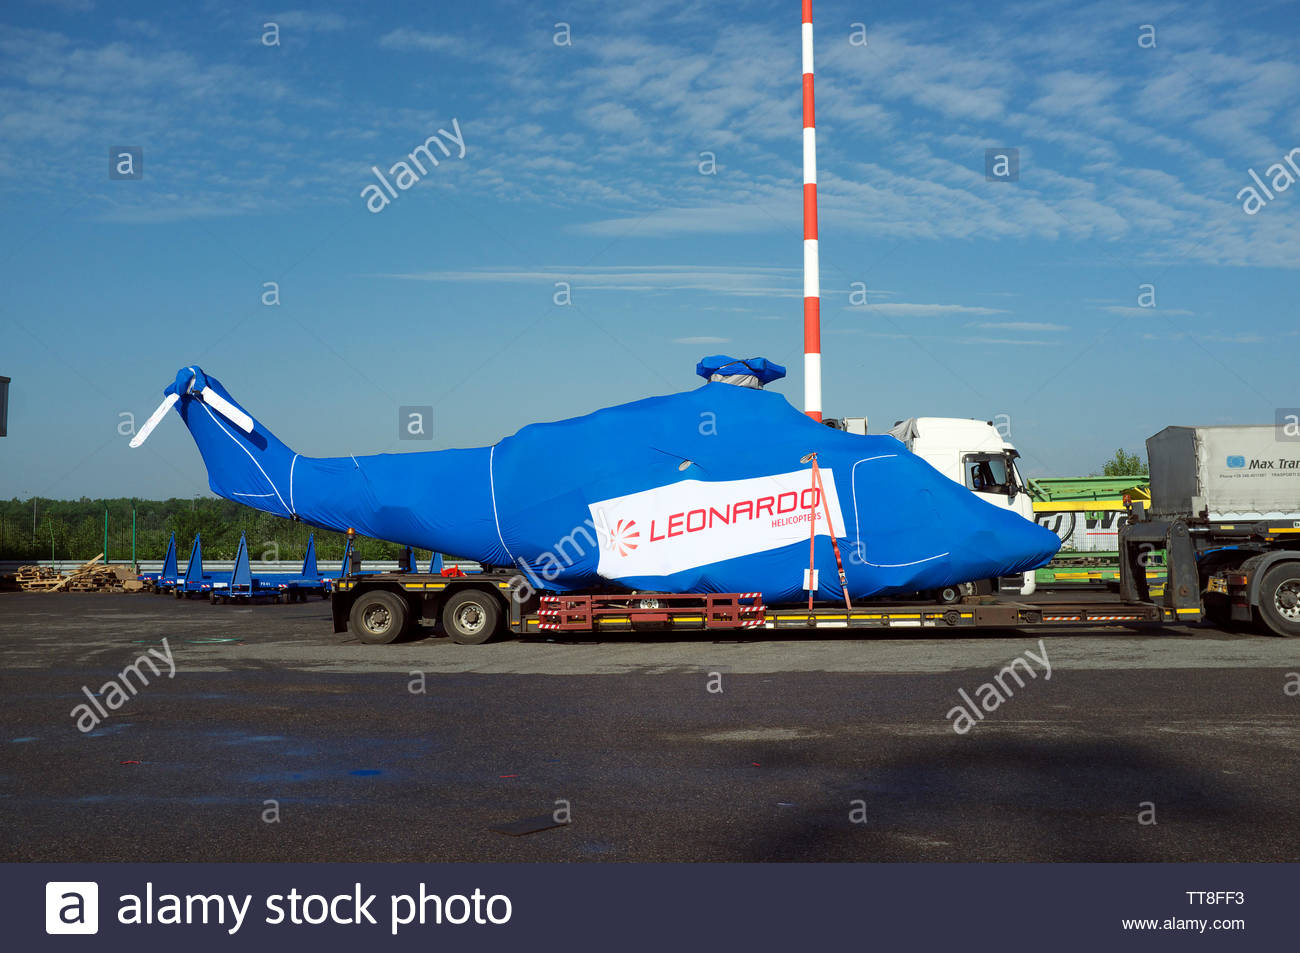 A new Leonardo helicopter under protective sheeting, on the back of a low loader vehicle. Malpensa Airport, Milan, Italy. - Stock Image